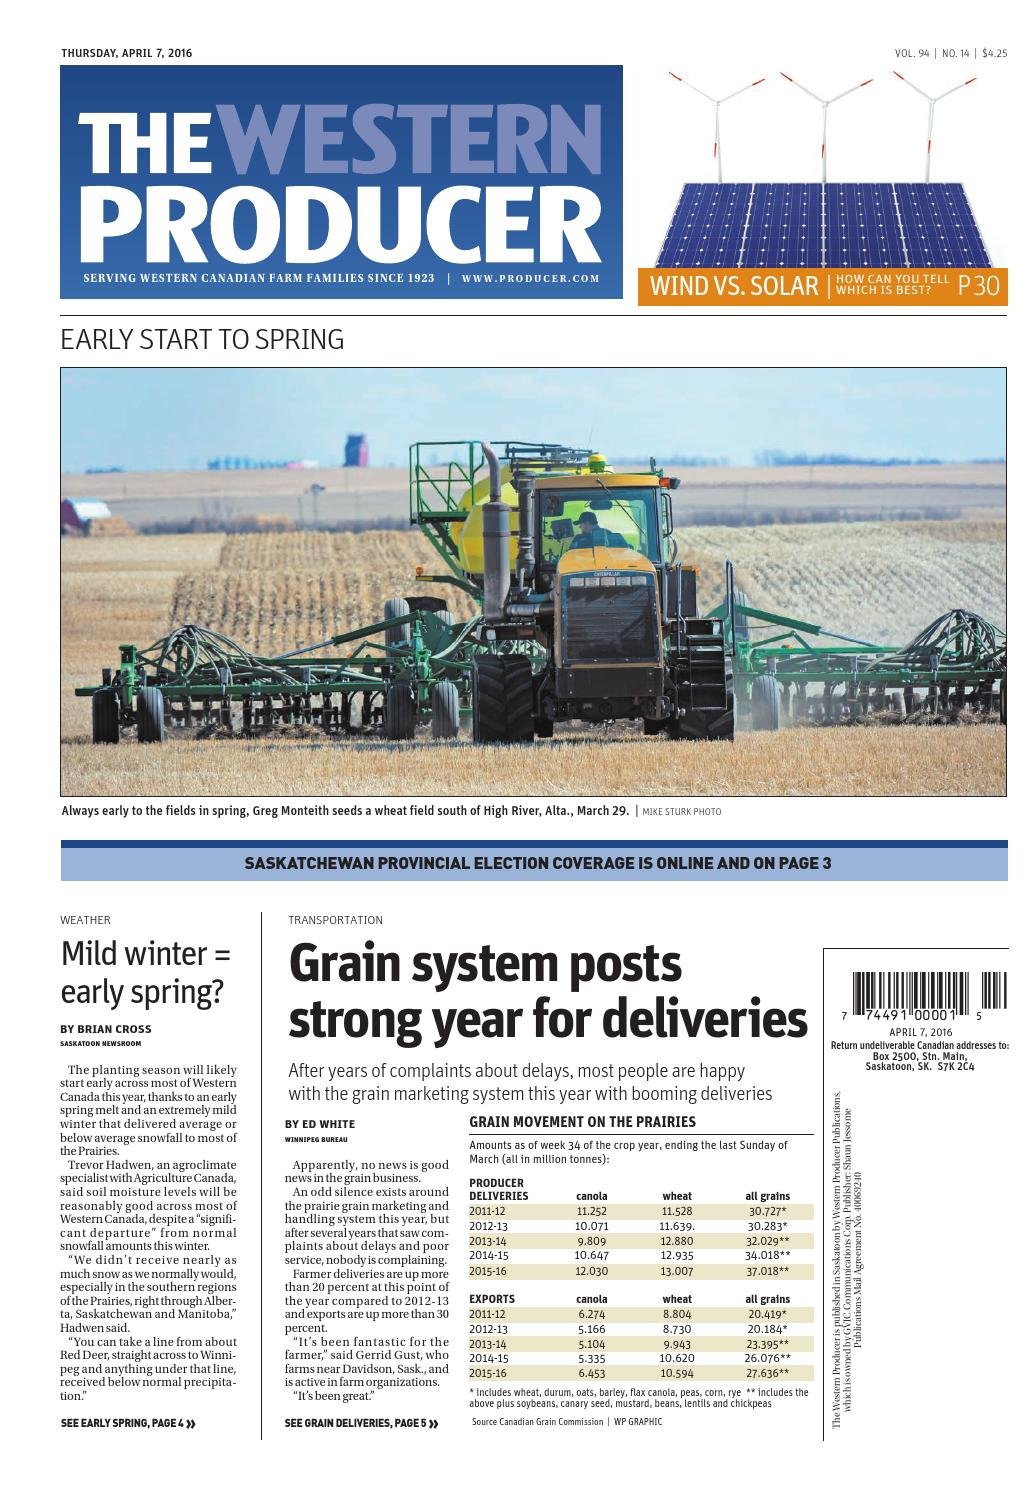 The western producer april 7, 2016 by The Western Producer - issuu